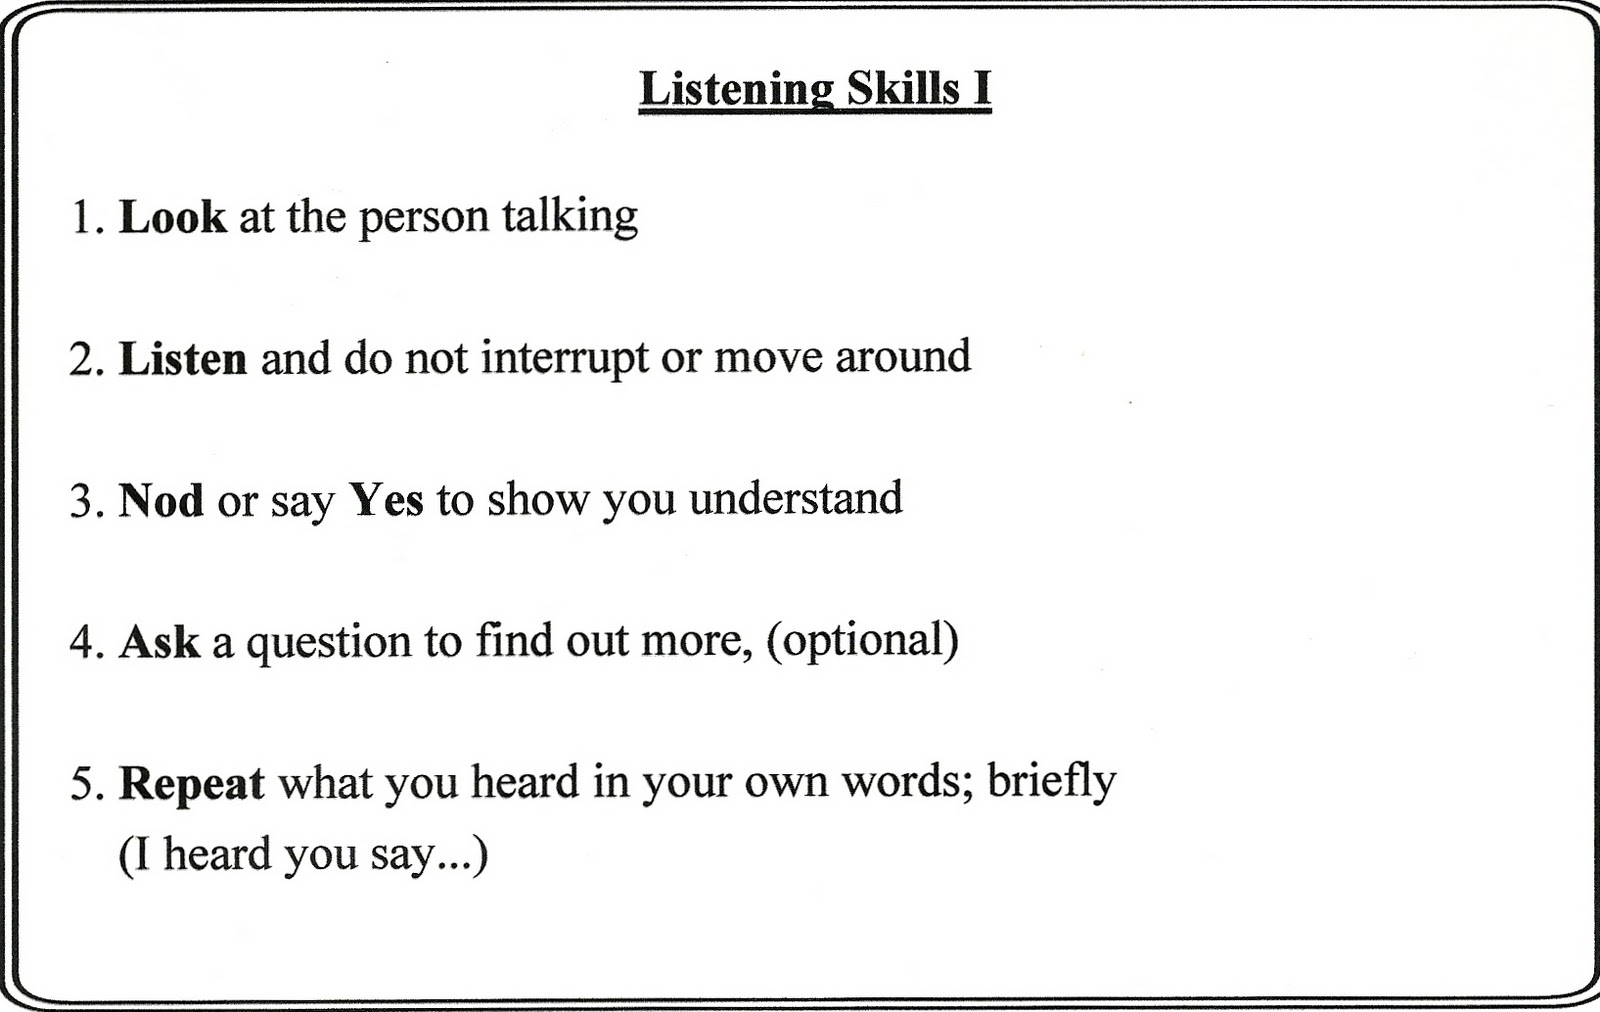 Free Worksheet Listening Skills Worksheets listening skills worksheets abitlikethis download image active pc android iphone